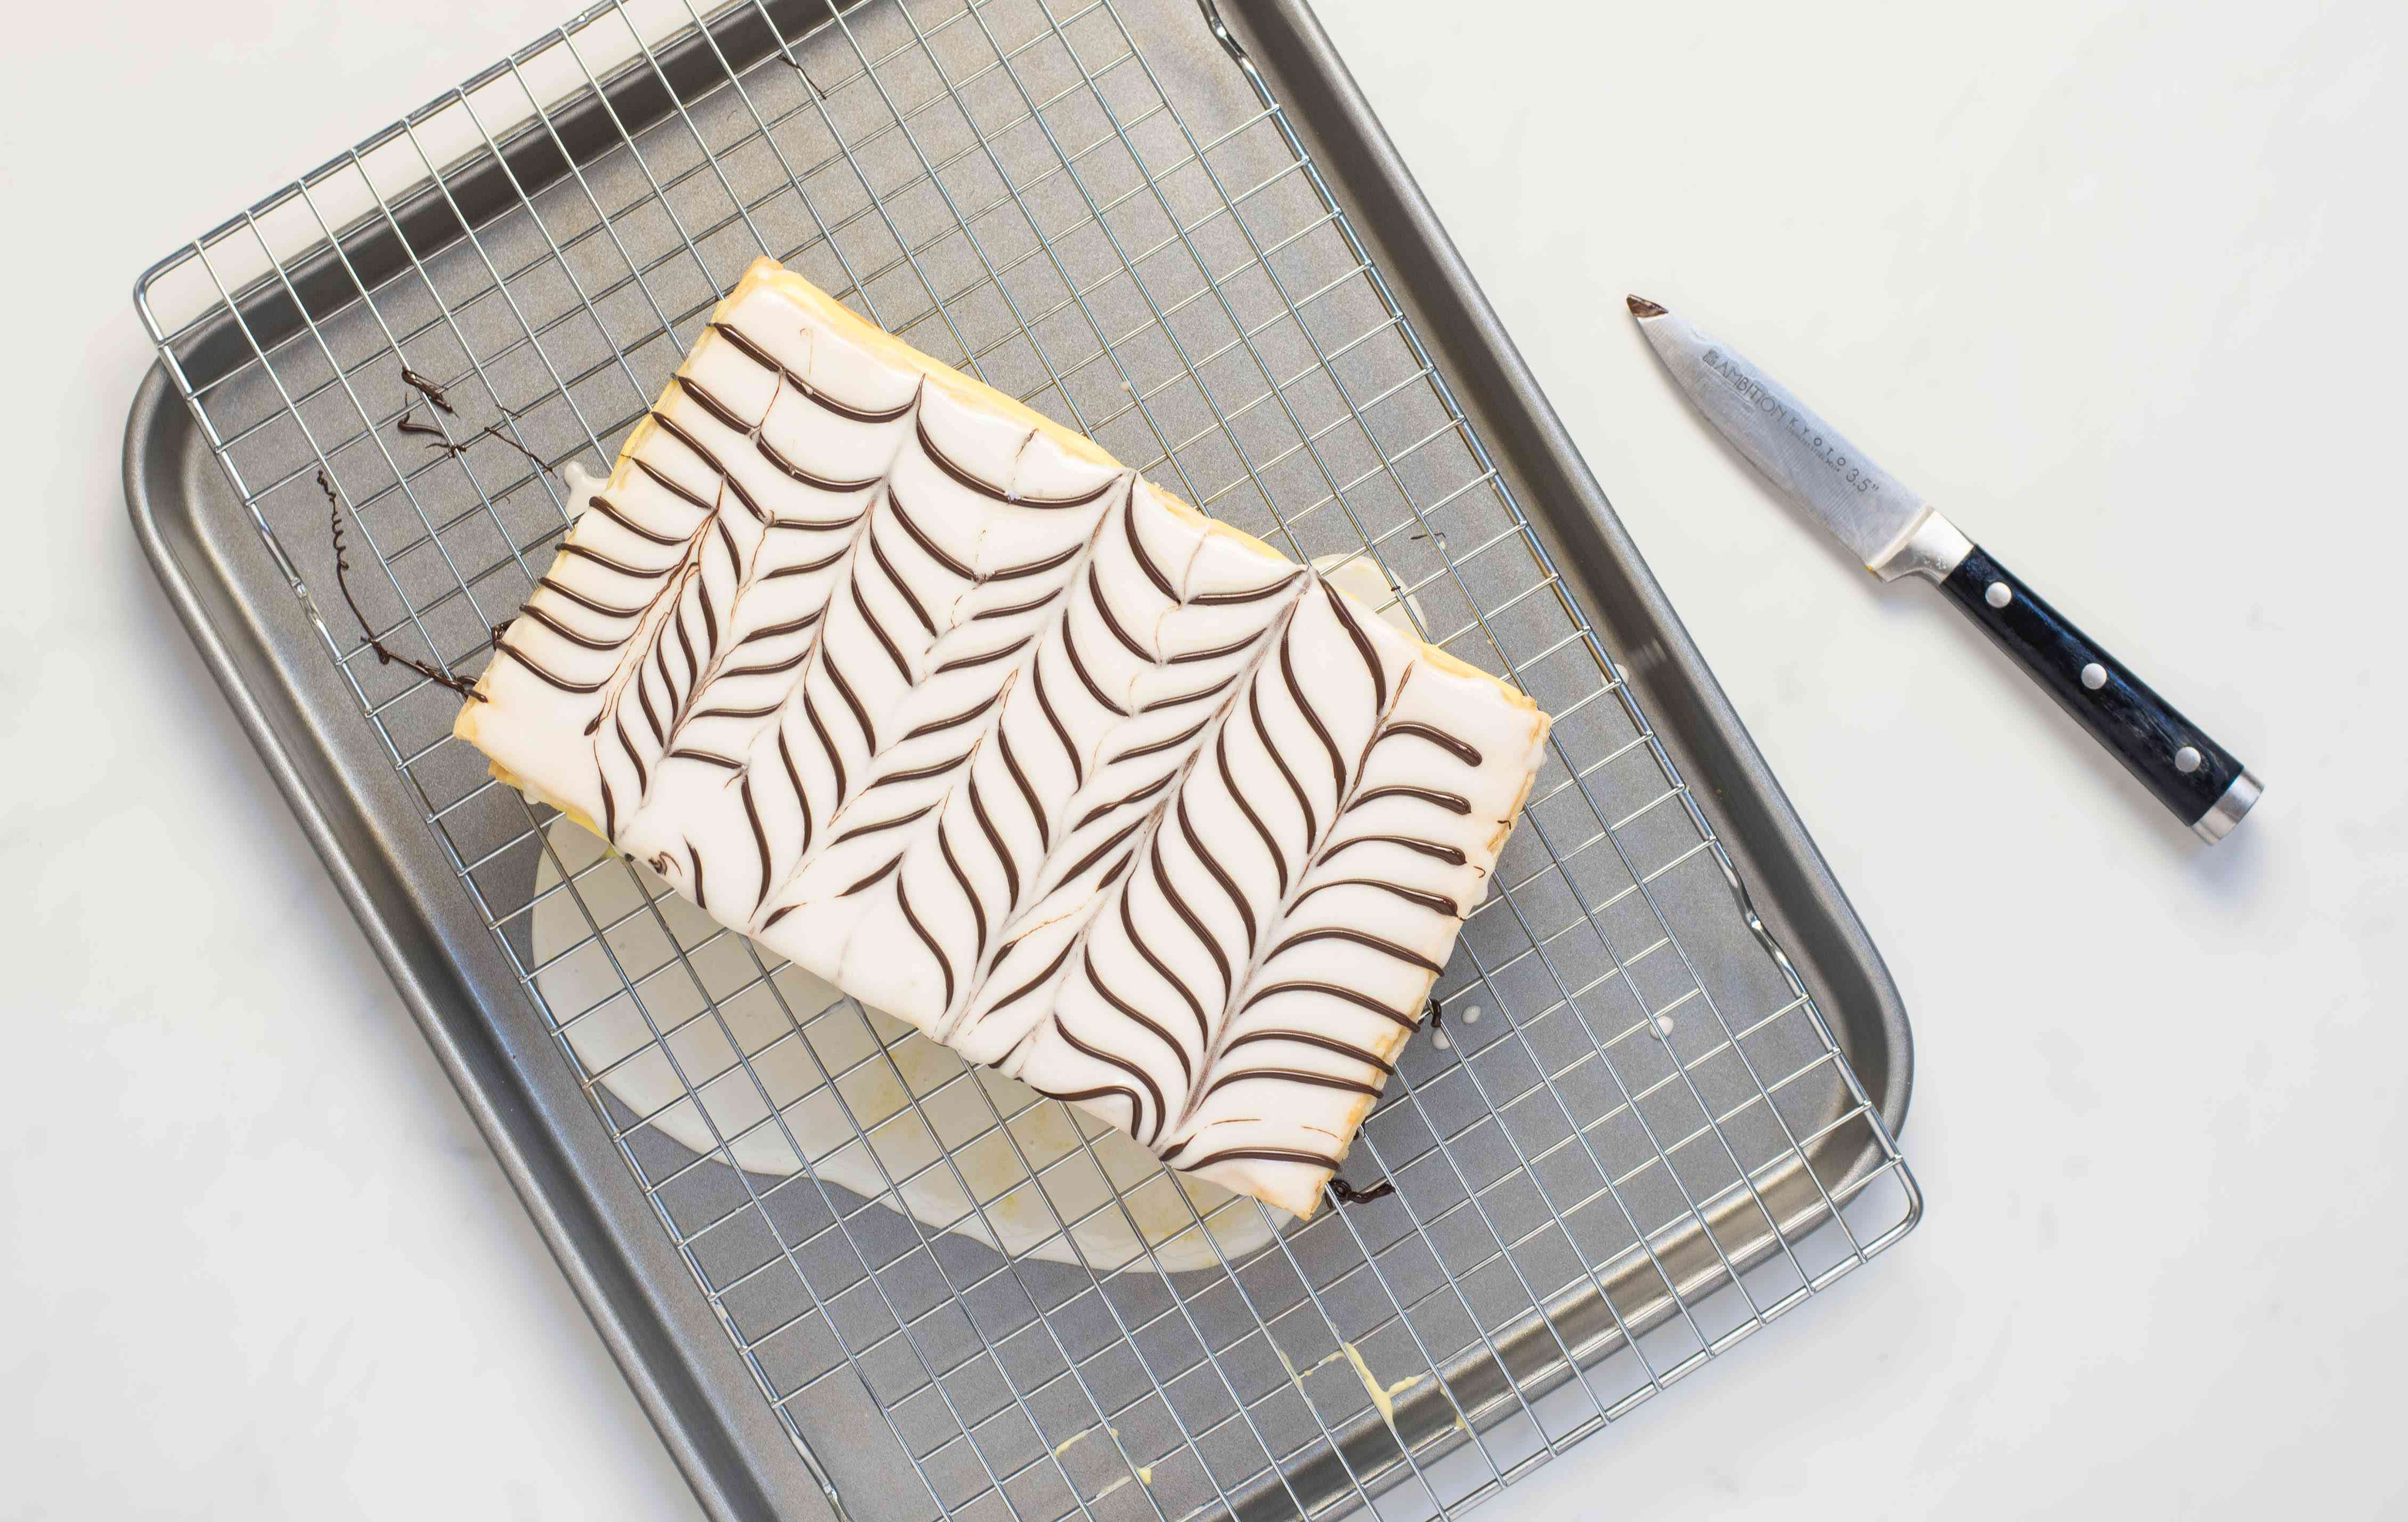 Chocolate icing decorated in a chevron pattern